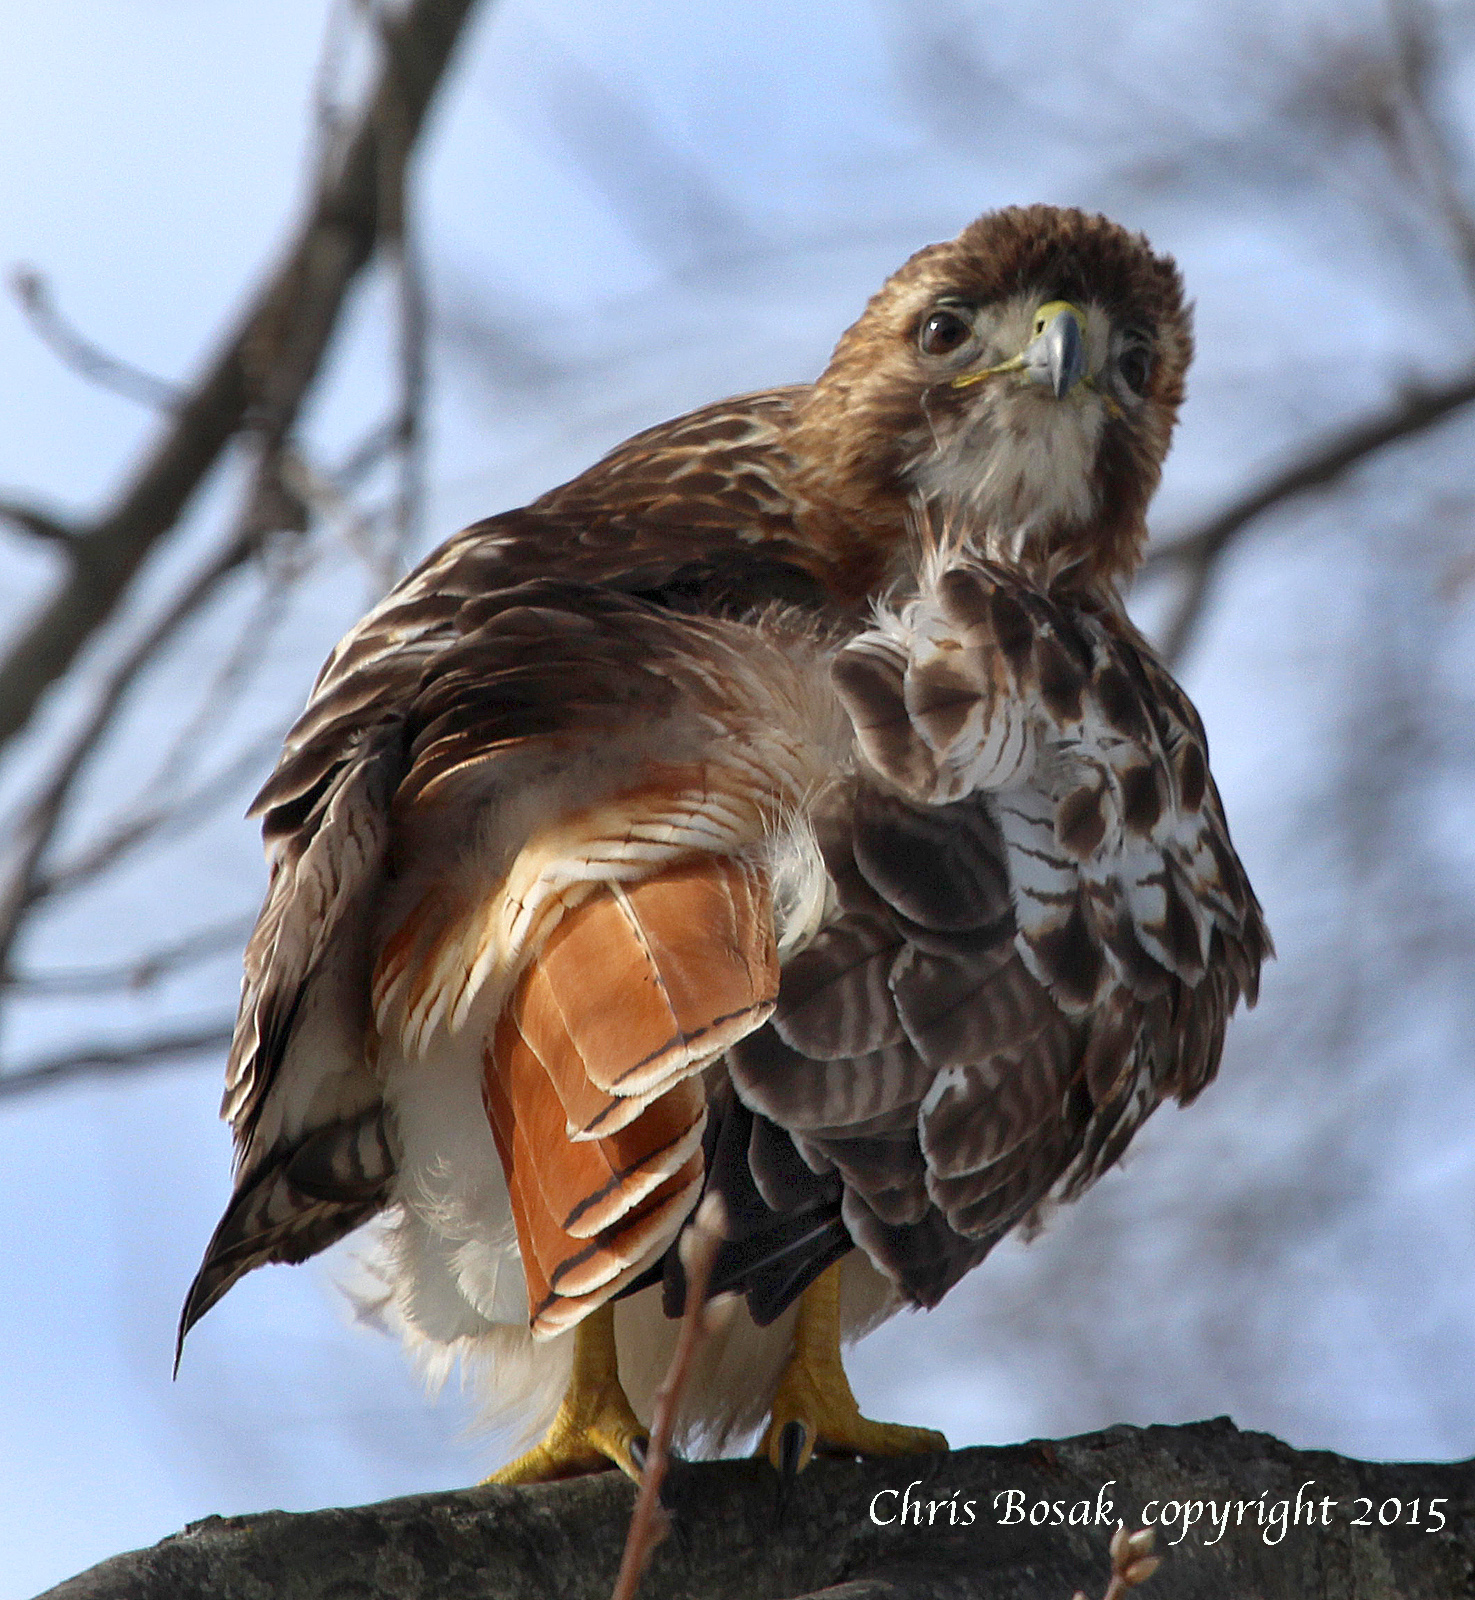 Photo by Chris Bosak A Red-tailed hawk at Weed Beach in Darien, Conn., January 2015.